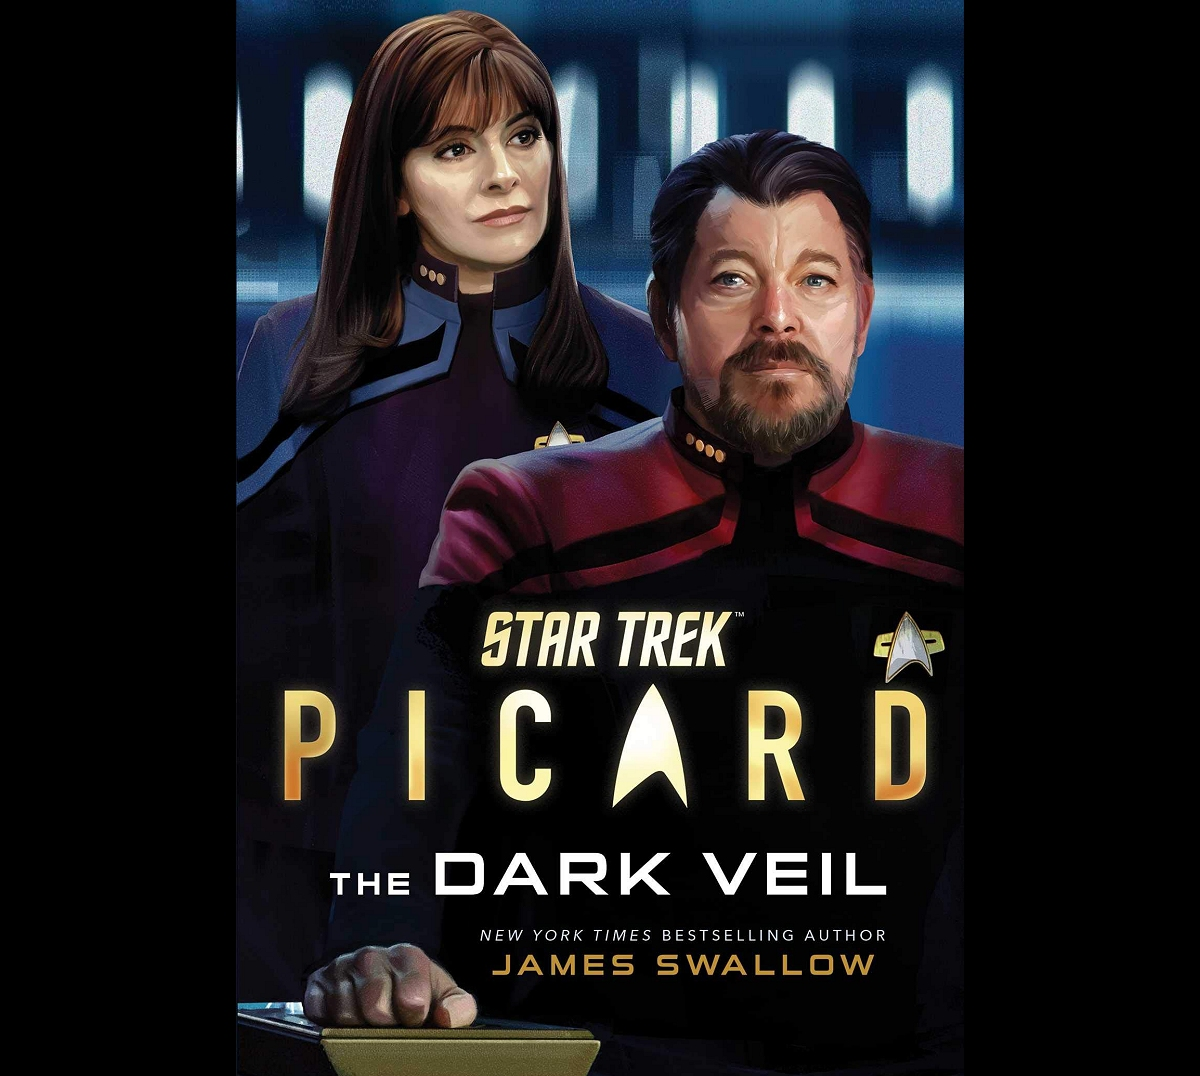 Weekly Pic # 2952, Picard Tie-In Book